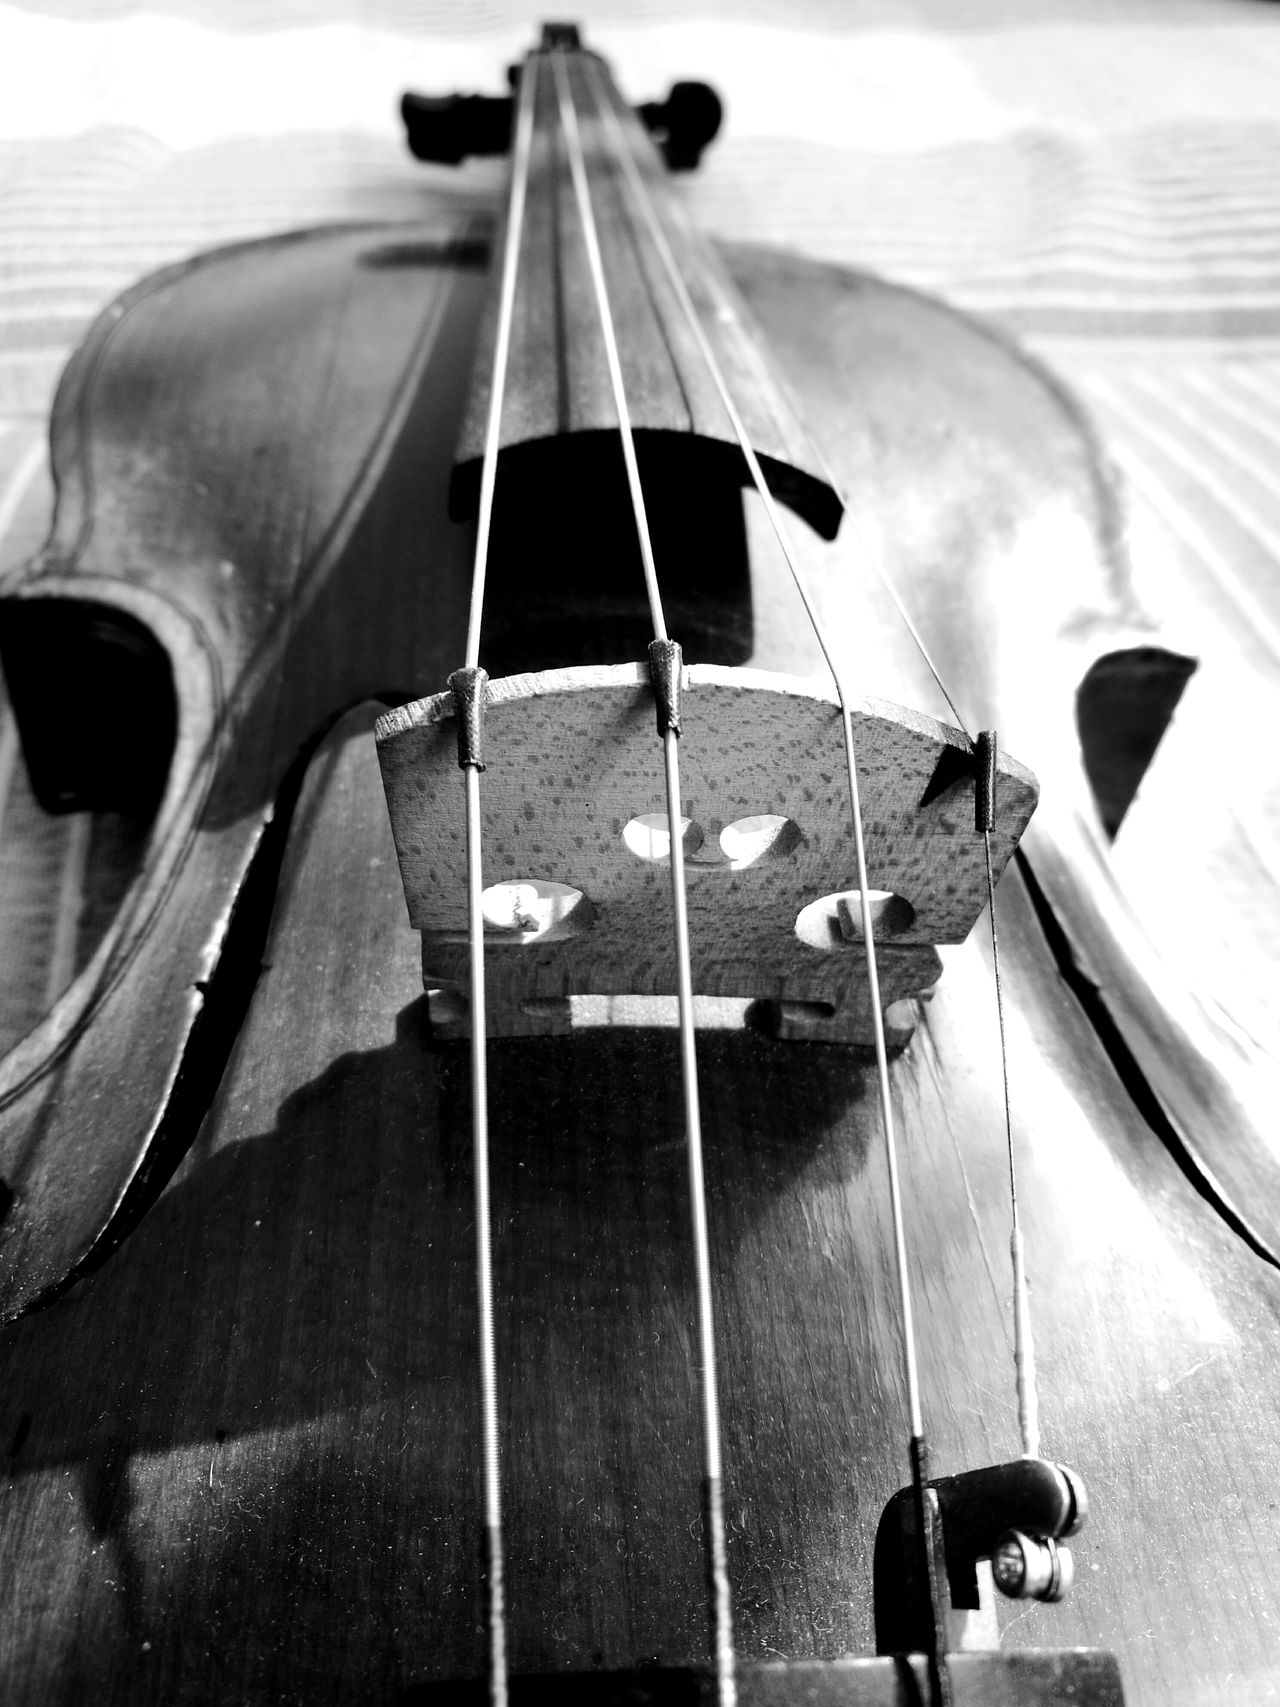 My old soul Musical Instrument Musical Instrument String Arts Culture And Entertainment Music Musical Equipment String Instrument Violin Wooden Texture Violin <3 Violin Strings Violin Soul EyeEmNewHere